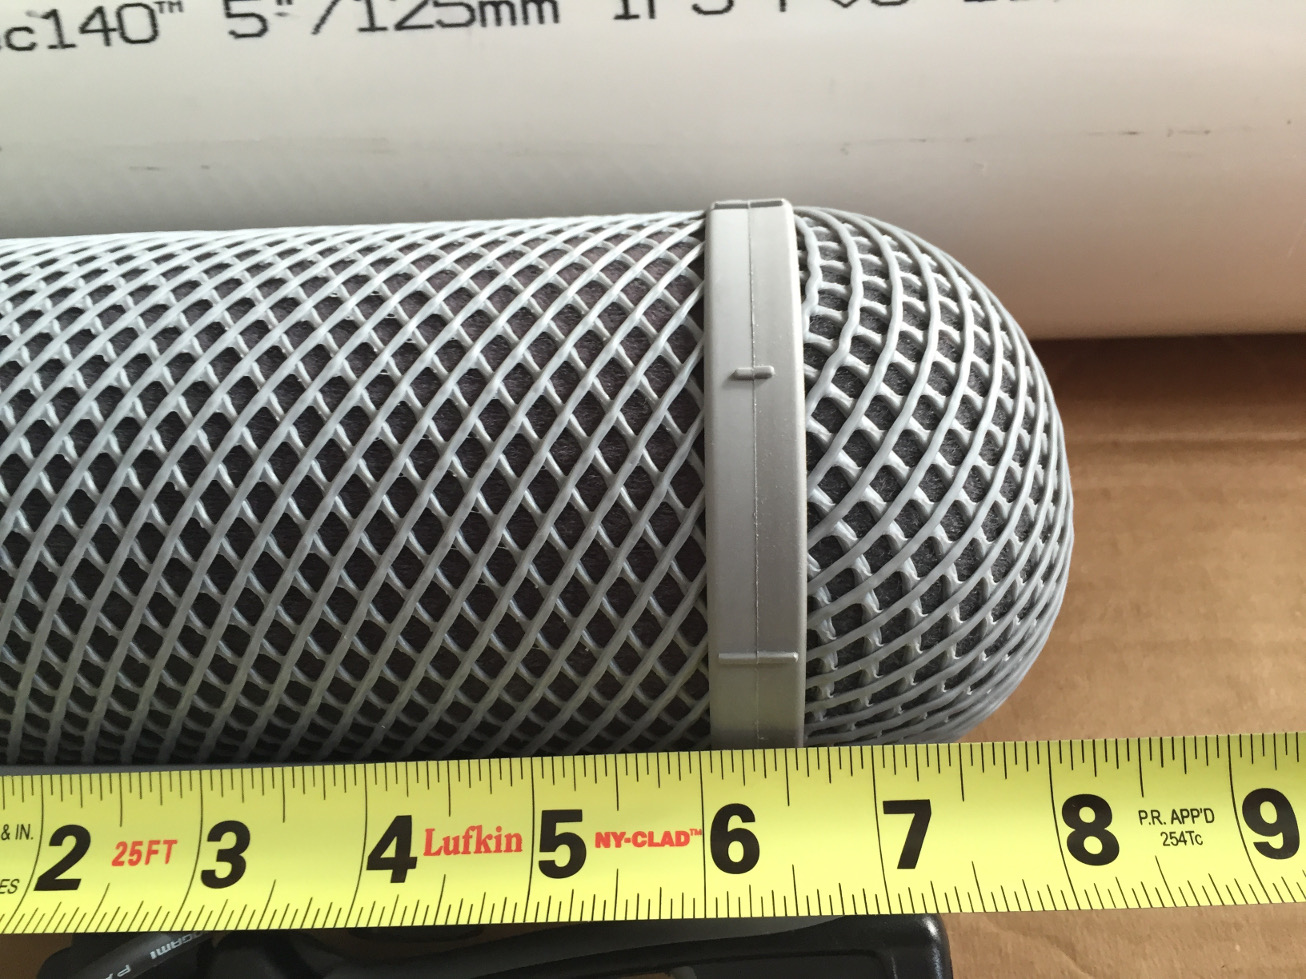 Measuring length of Rycote WS2